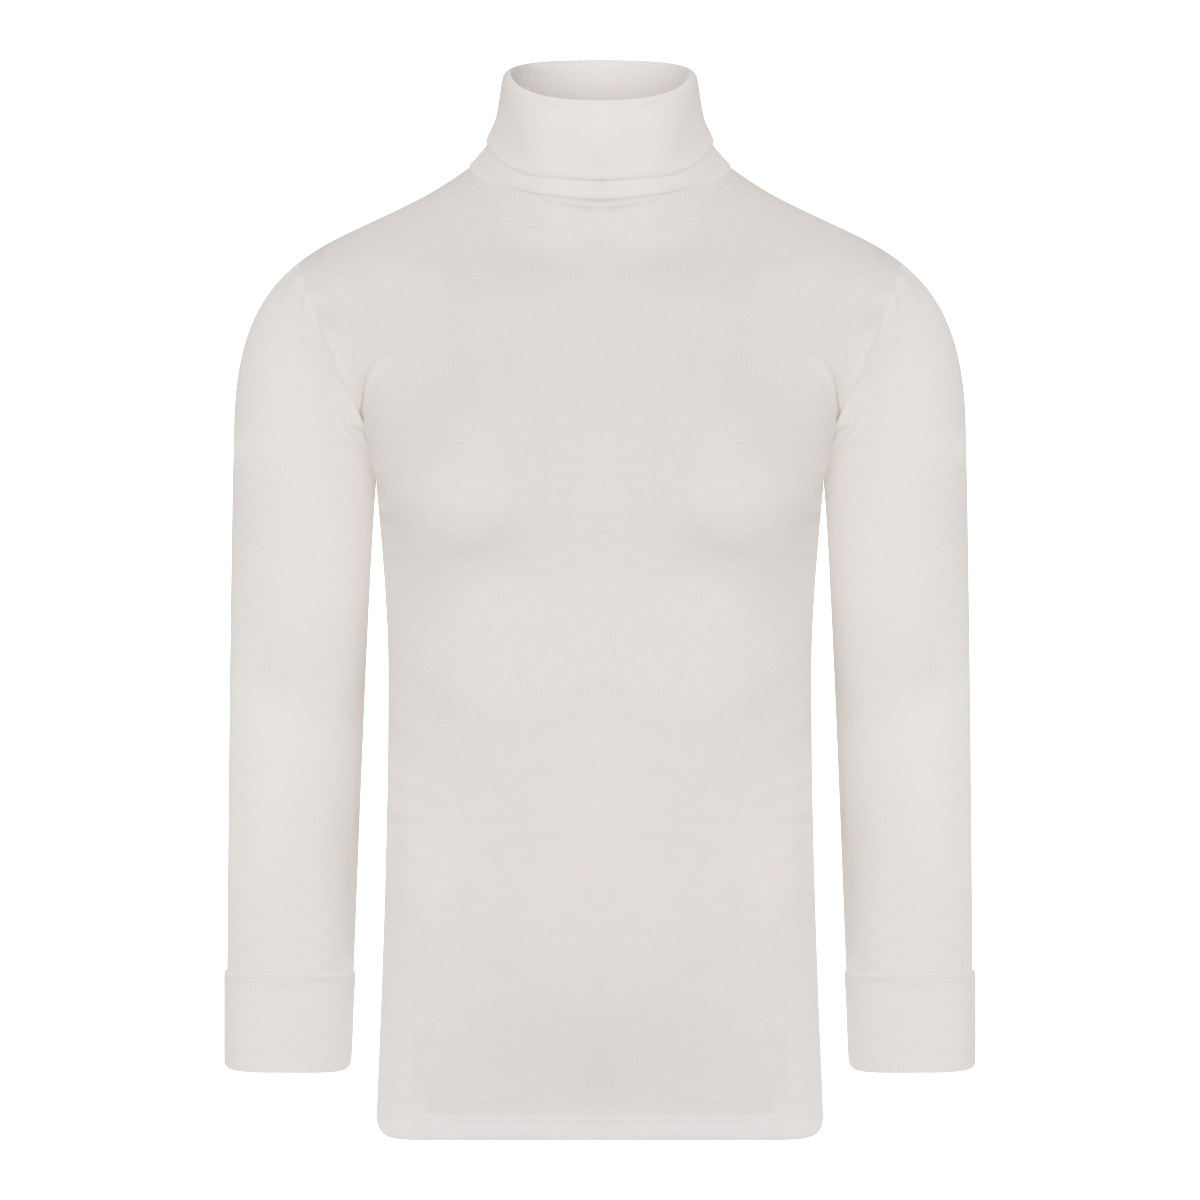 Beeren Thermo Unisex Shirt Col Lange Mouw Wolwit L